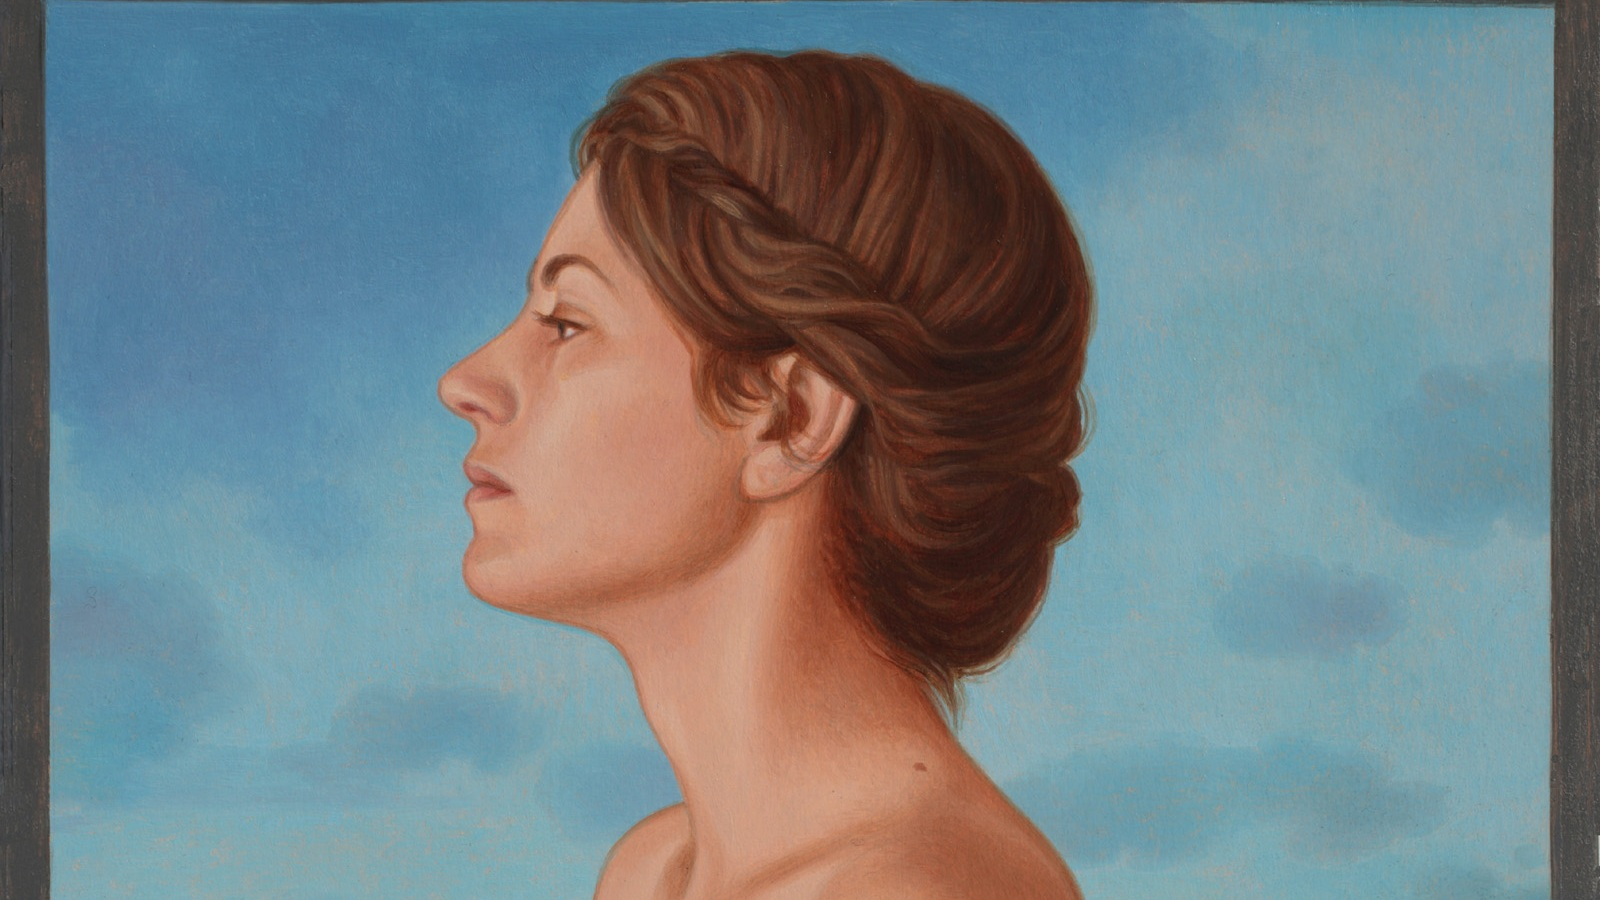 The Sculptor's Model, oil painting on board 2015 , Oil Painting Portrait of a Sculptor's Model, with Italian Landscape in the background. Gessoed coated Fabriano paper mounted on a panel cm. 18 x 18.